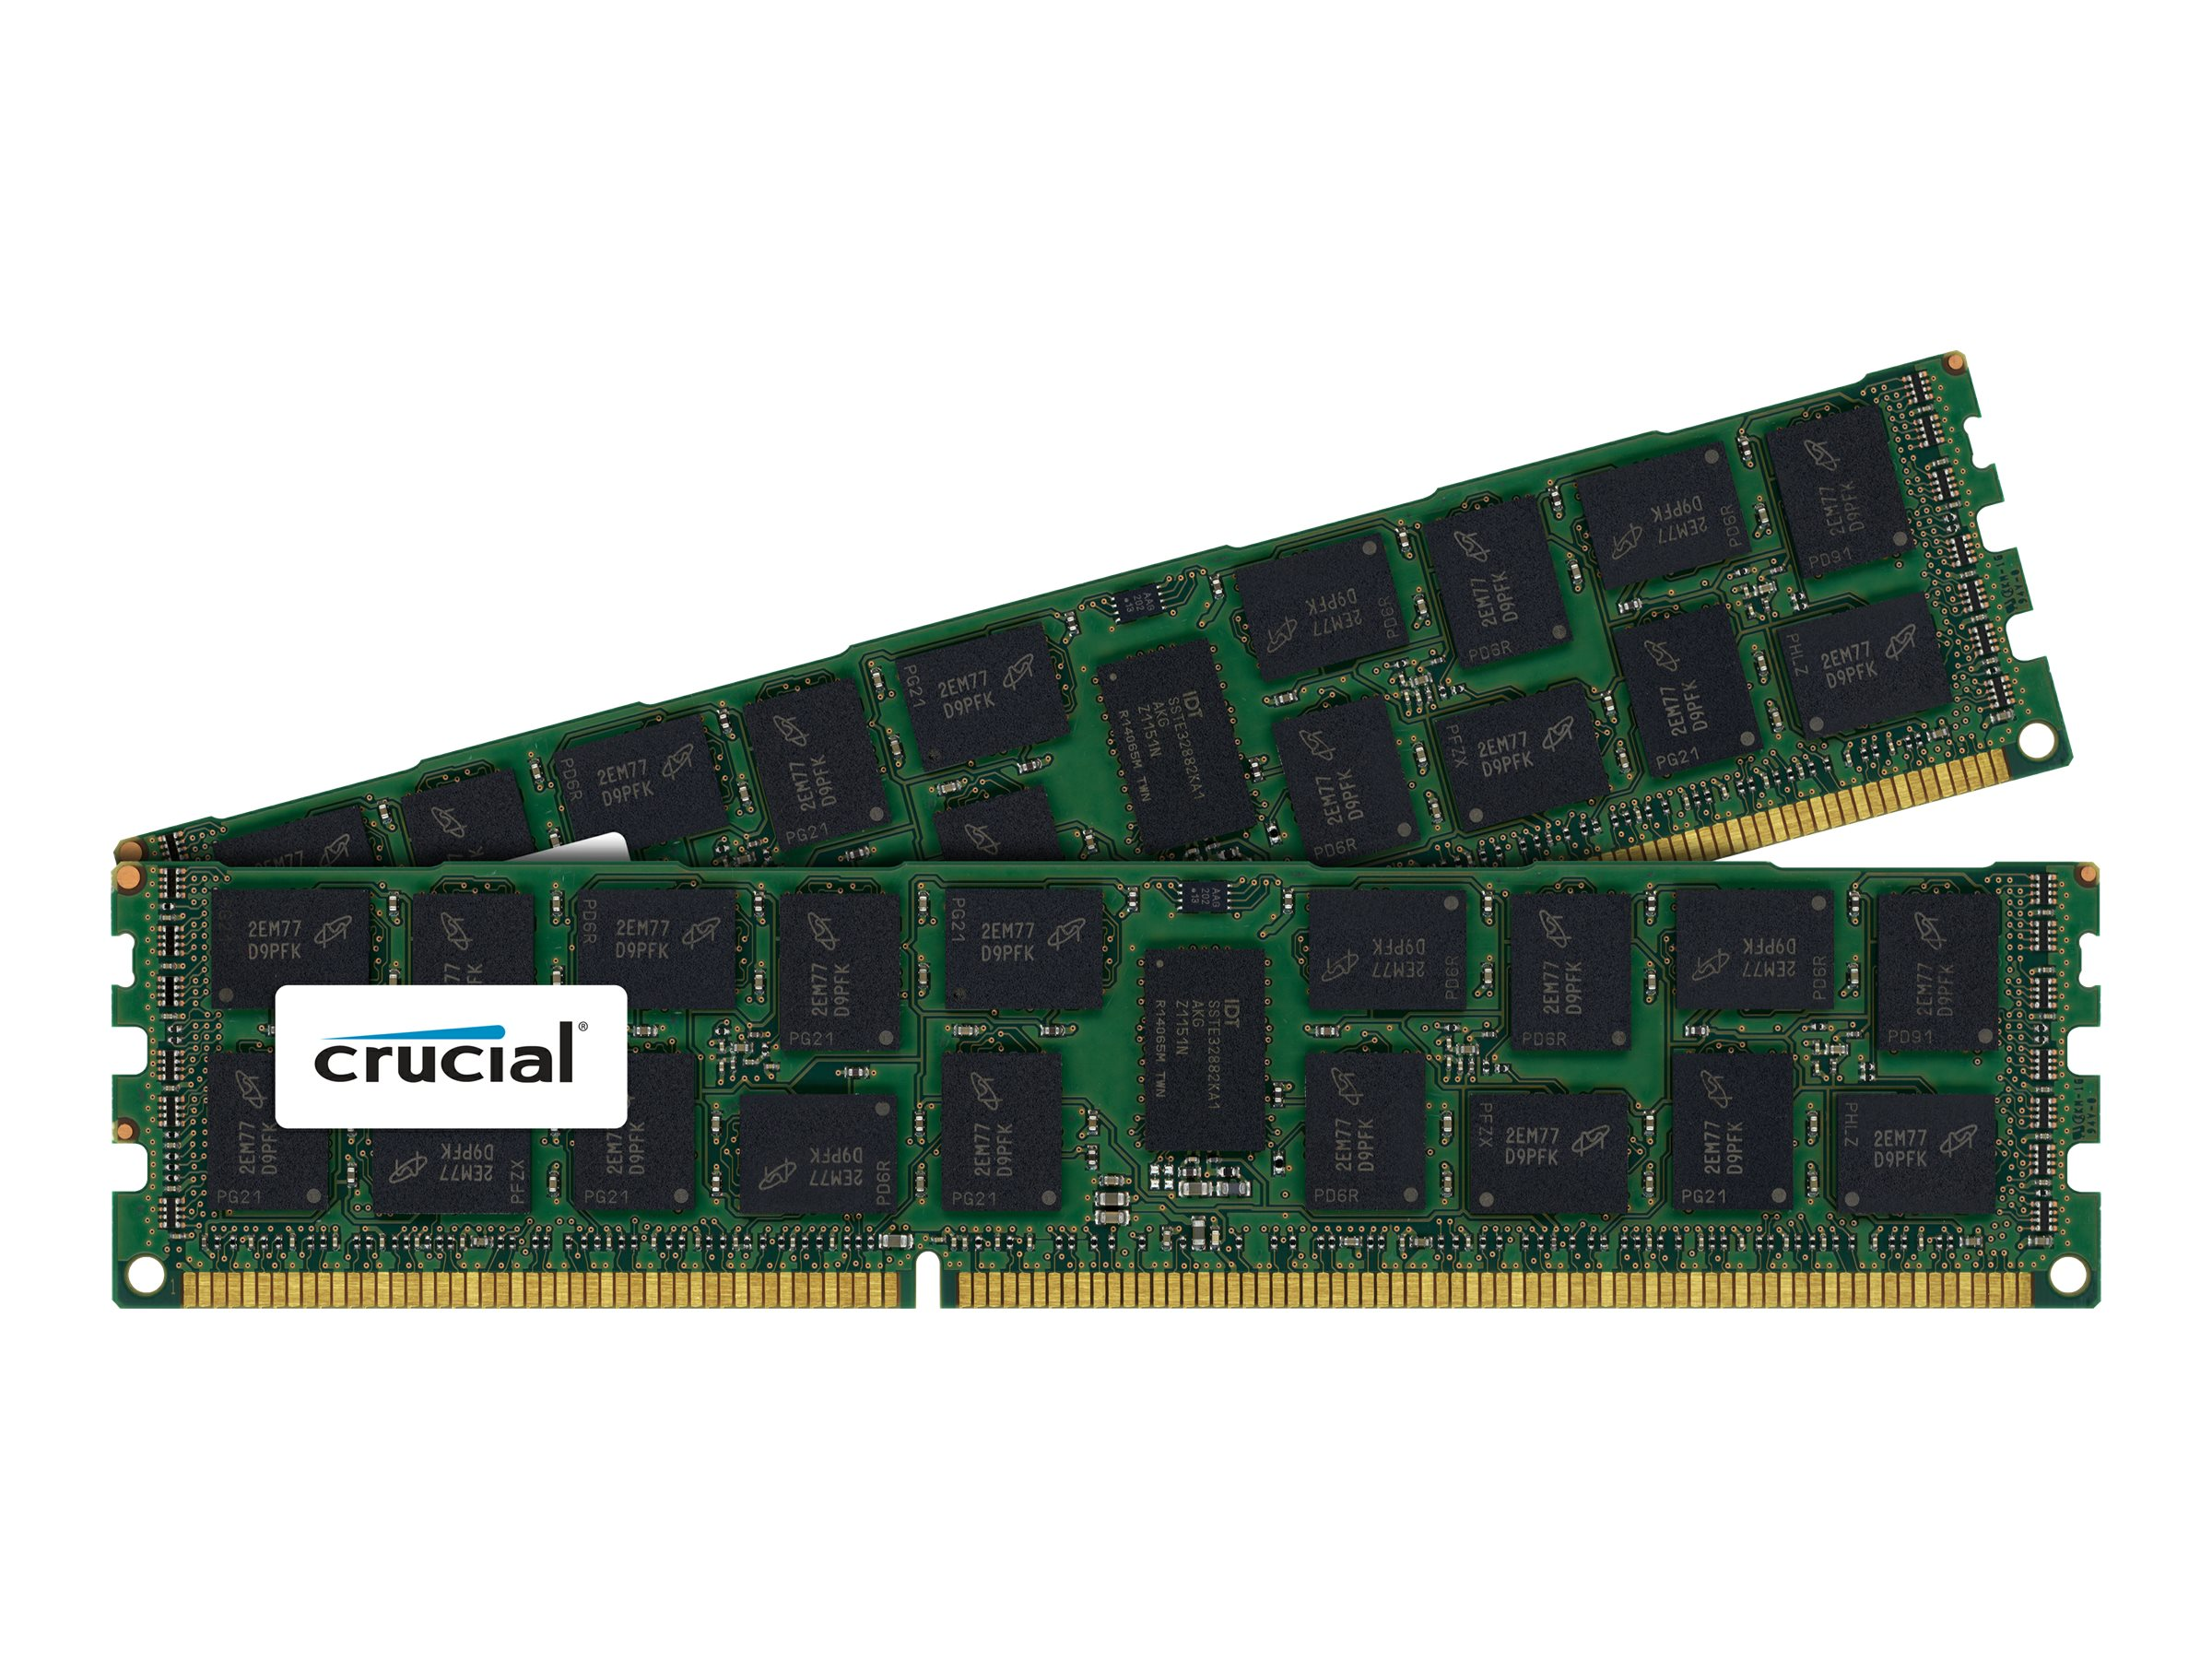 Crucial 64GB PC3-10600 240-pin DDR3 SDRAM DIMM Kit, CT2K32G3ERSLQ41339, 16797801, Memory